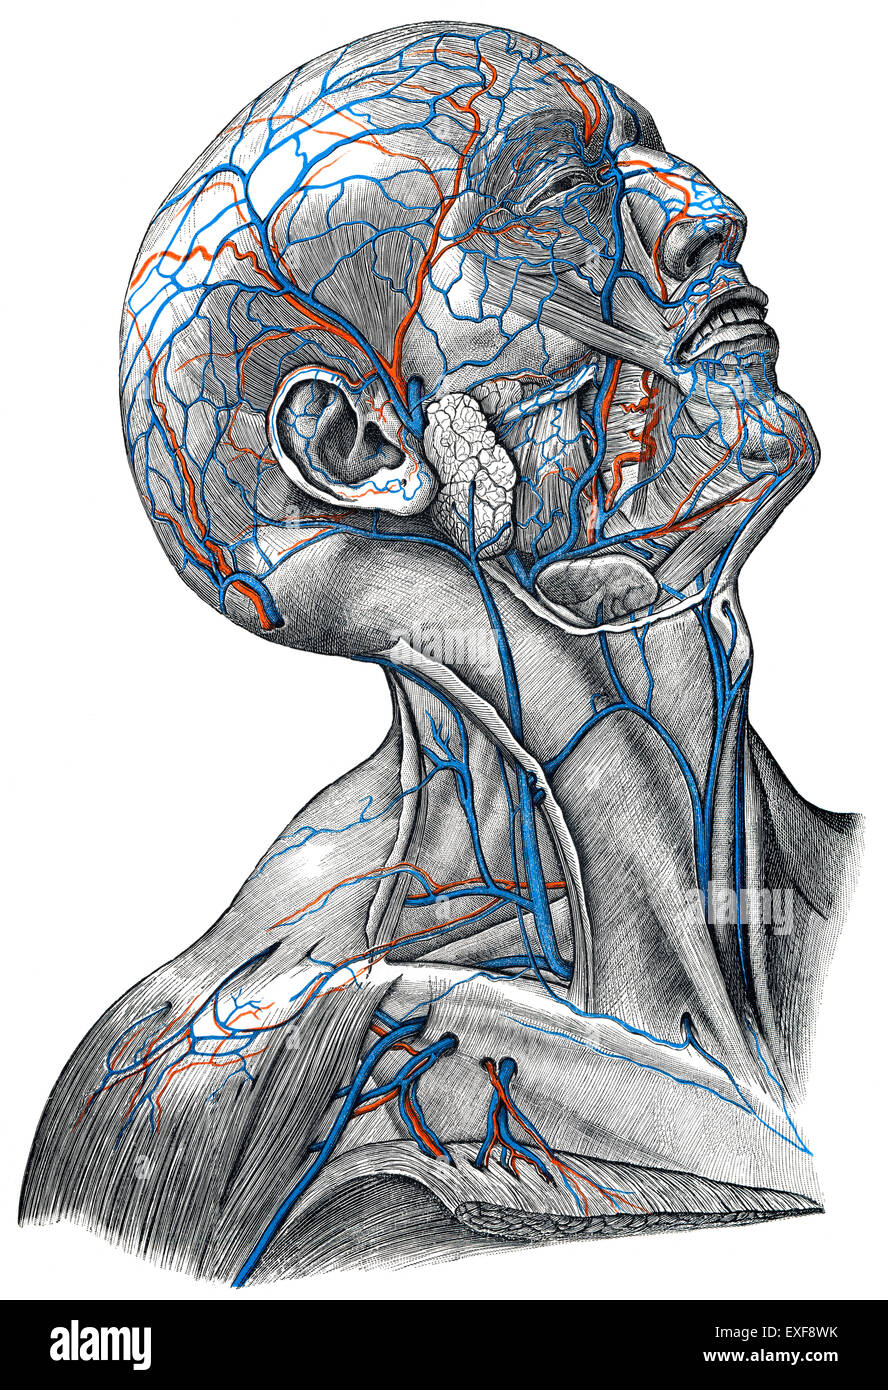 The veins in the head area - Stock Image